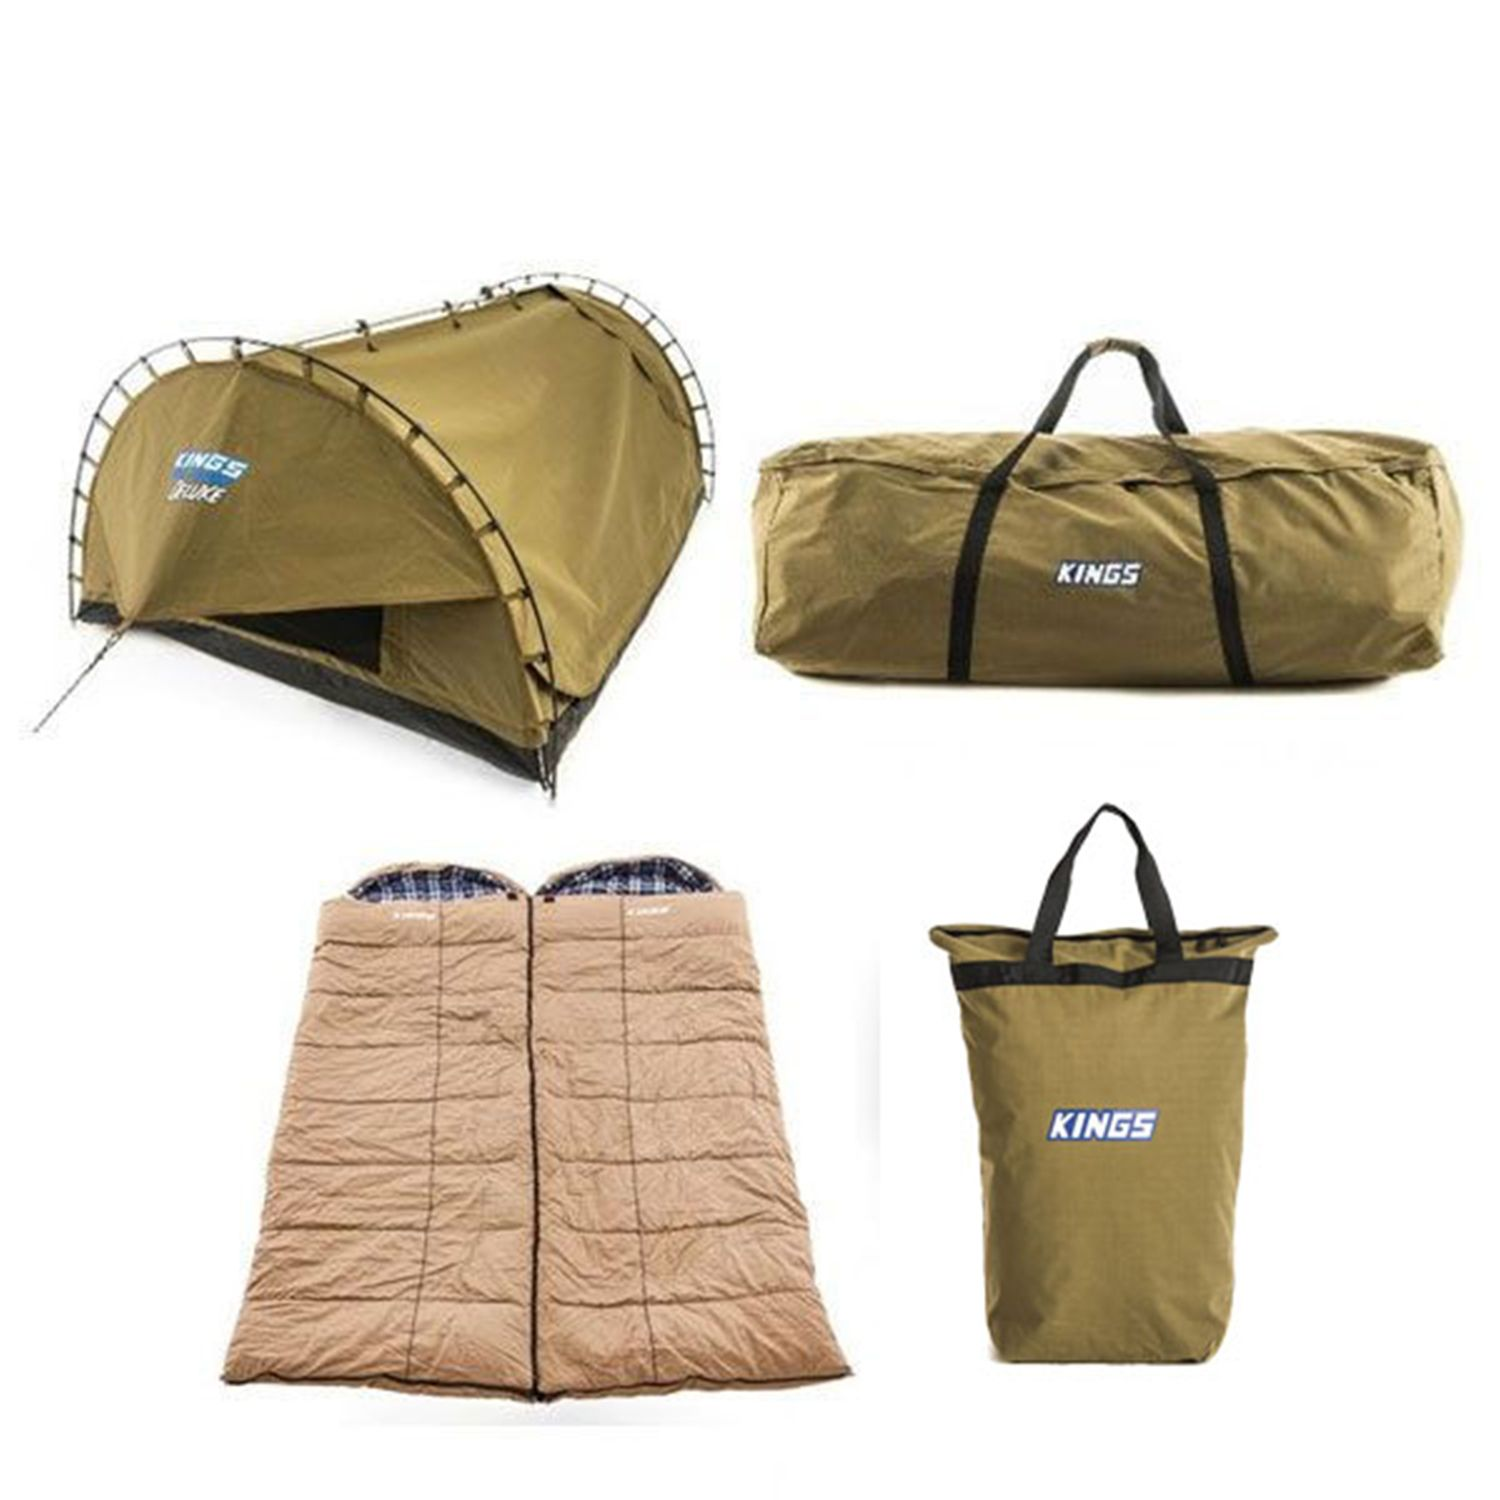 Adventure Kings 'Big Daddy' Deluxe Double Swag + 2x Premium Sleeping bag + Swag Canvas Bag + Doona/Pillow Canvas Bag